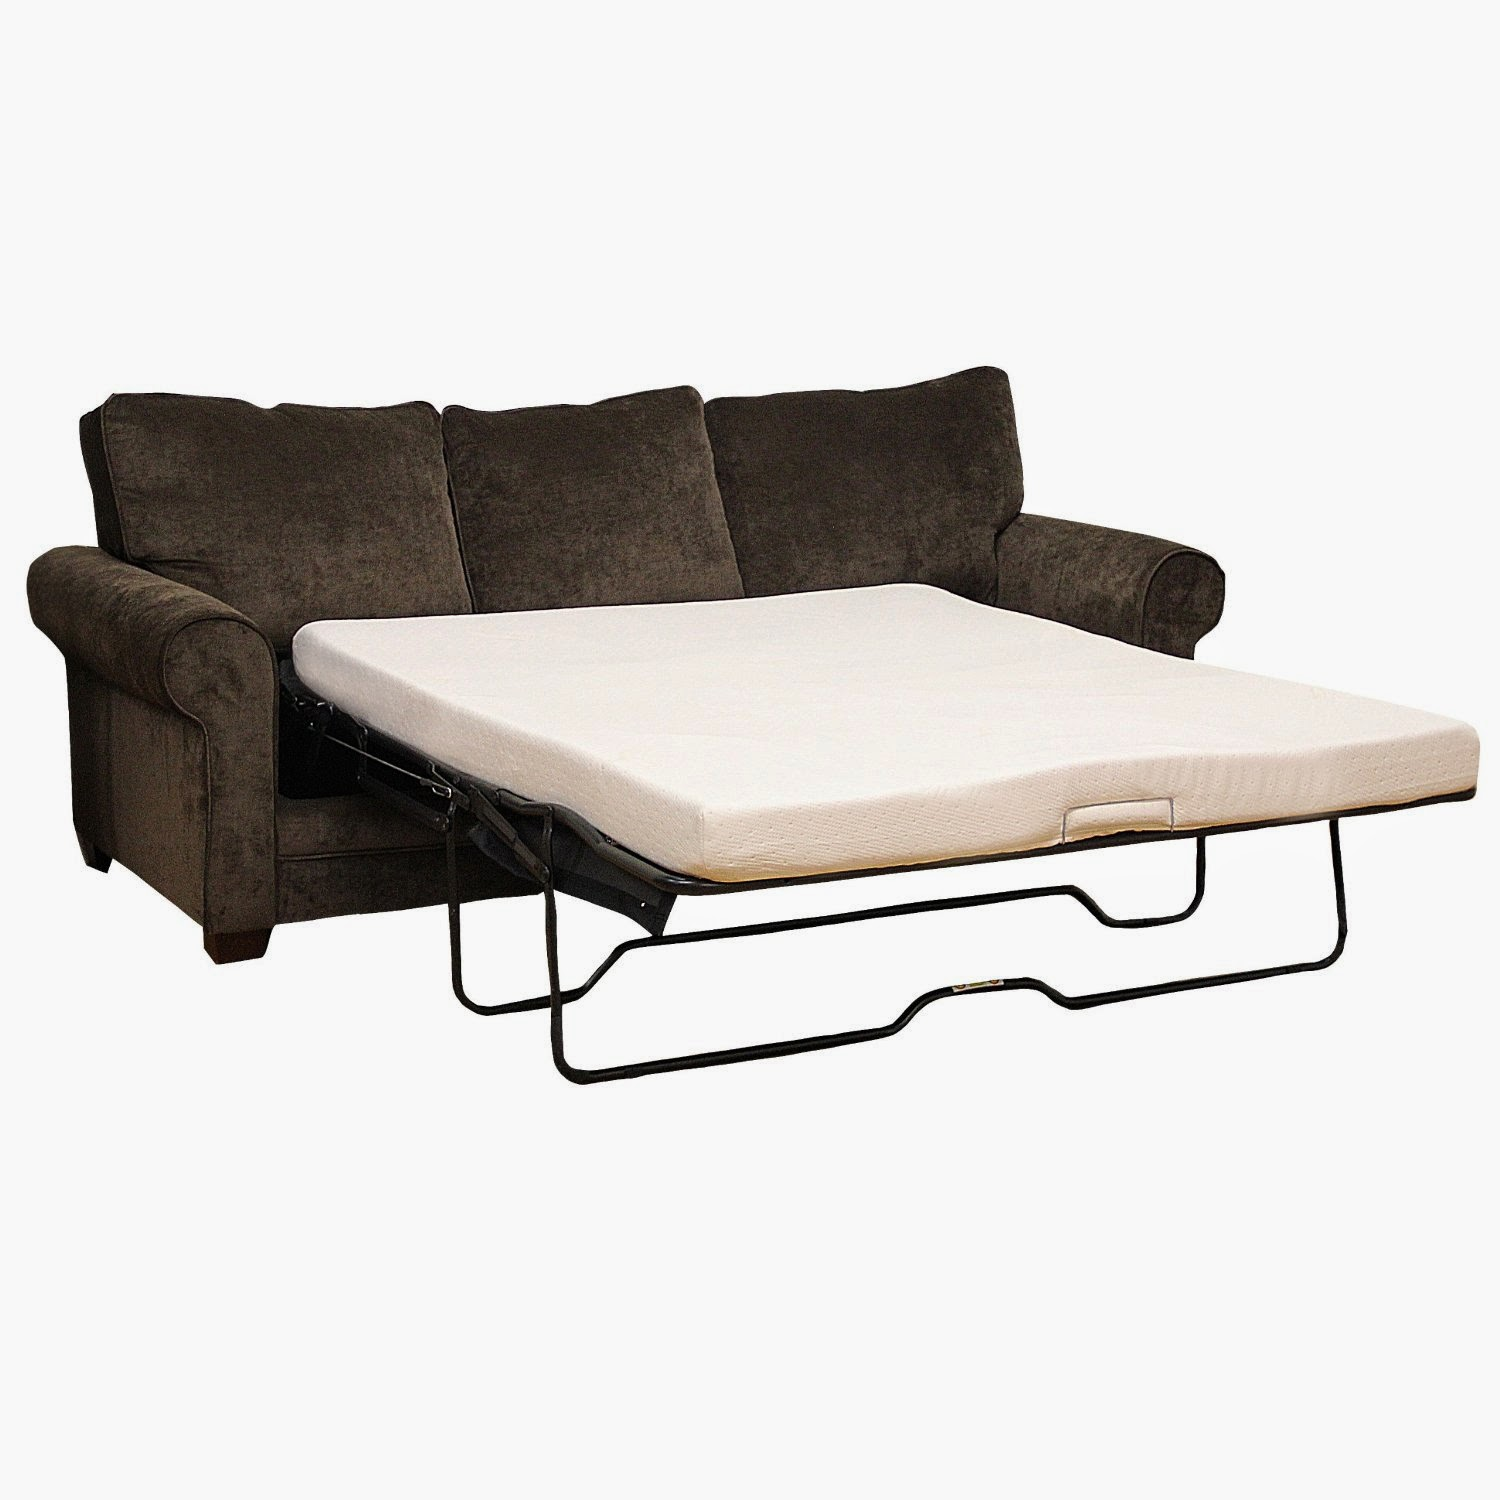 Fold Out Sofa Mattress Sectional Sleeper Couch Bed